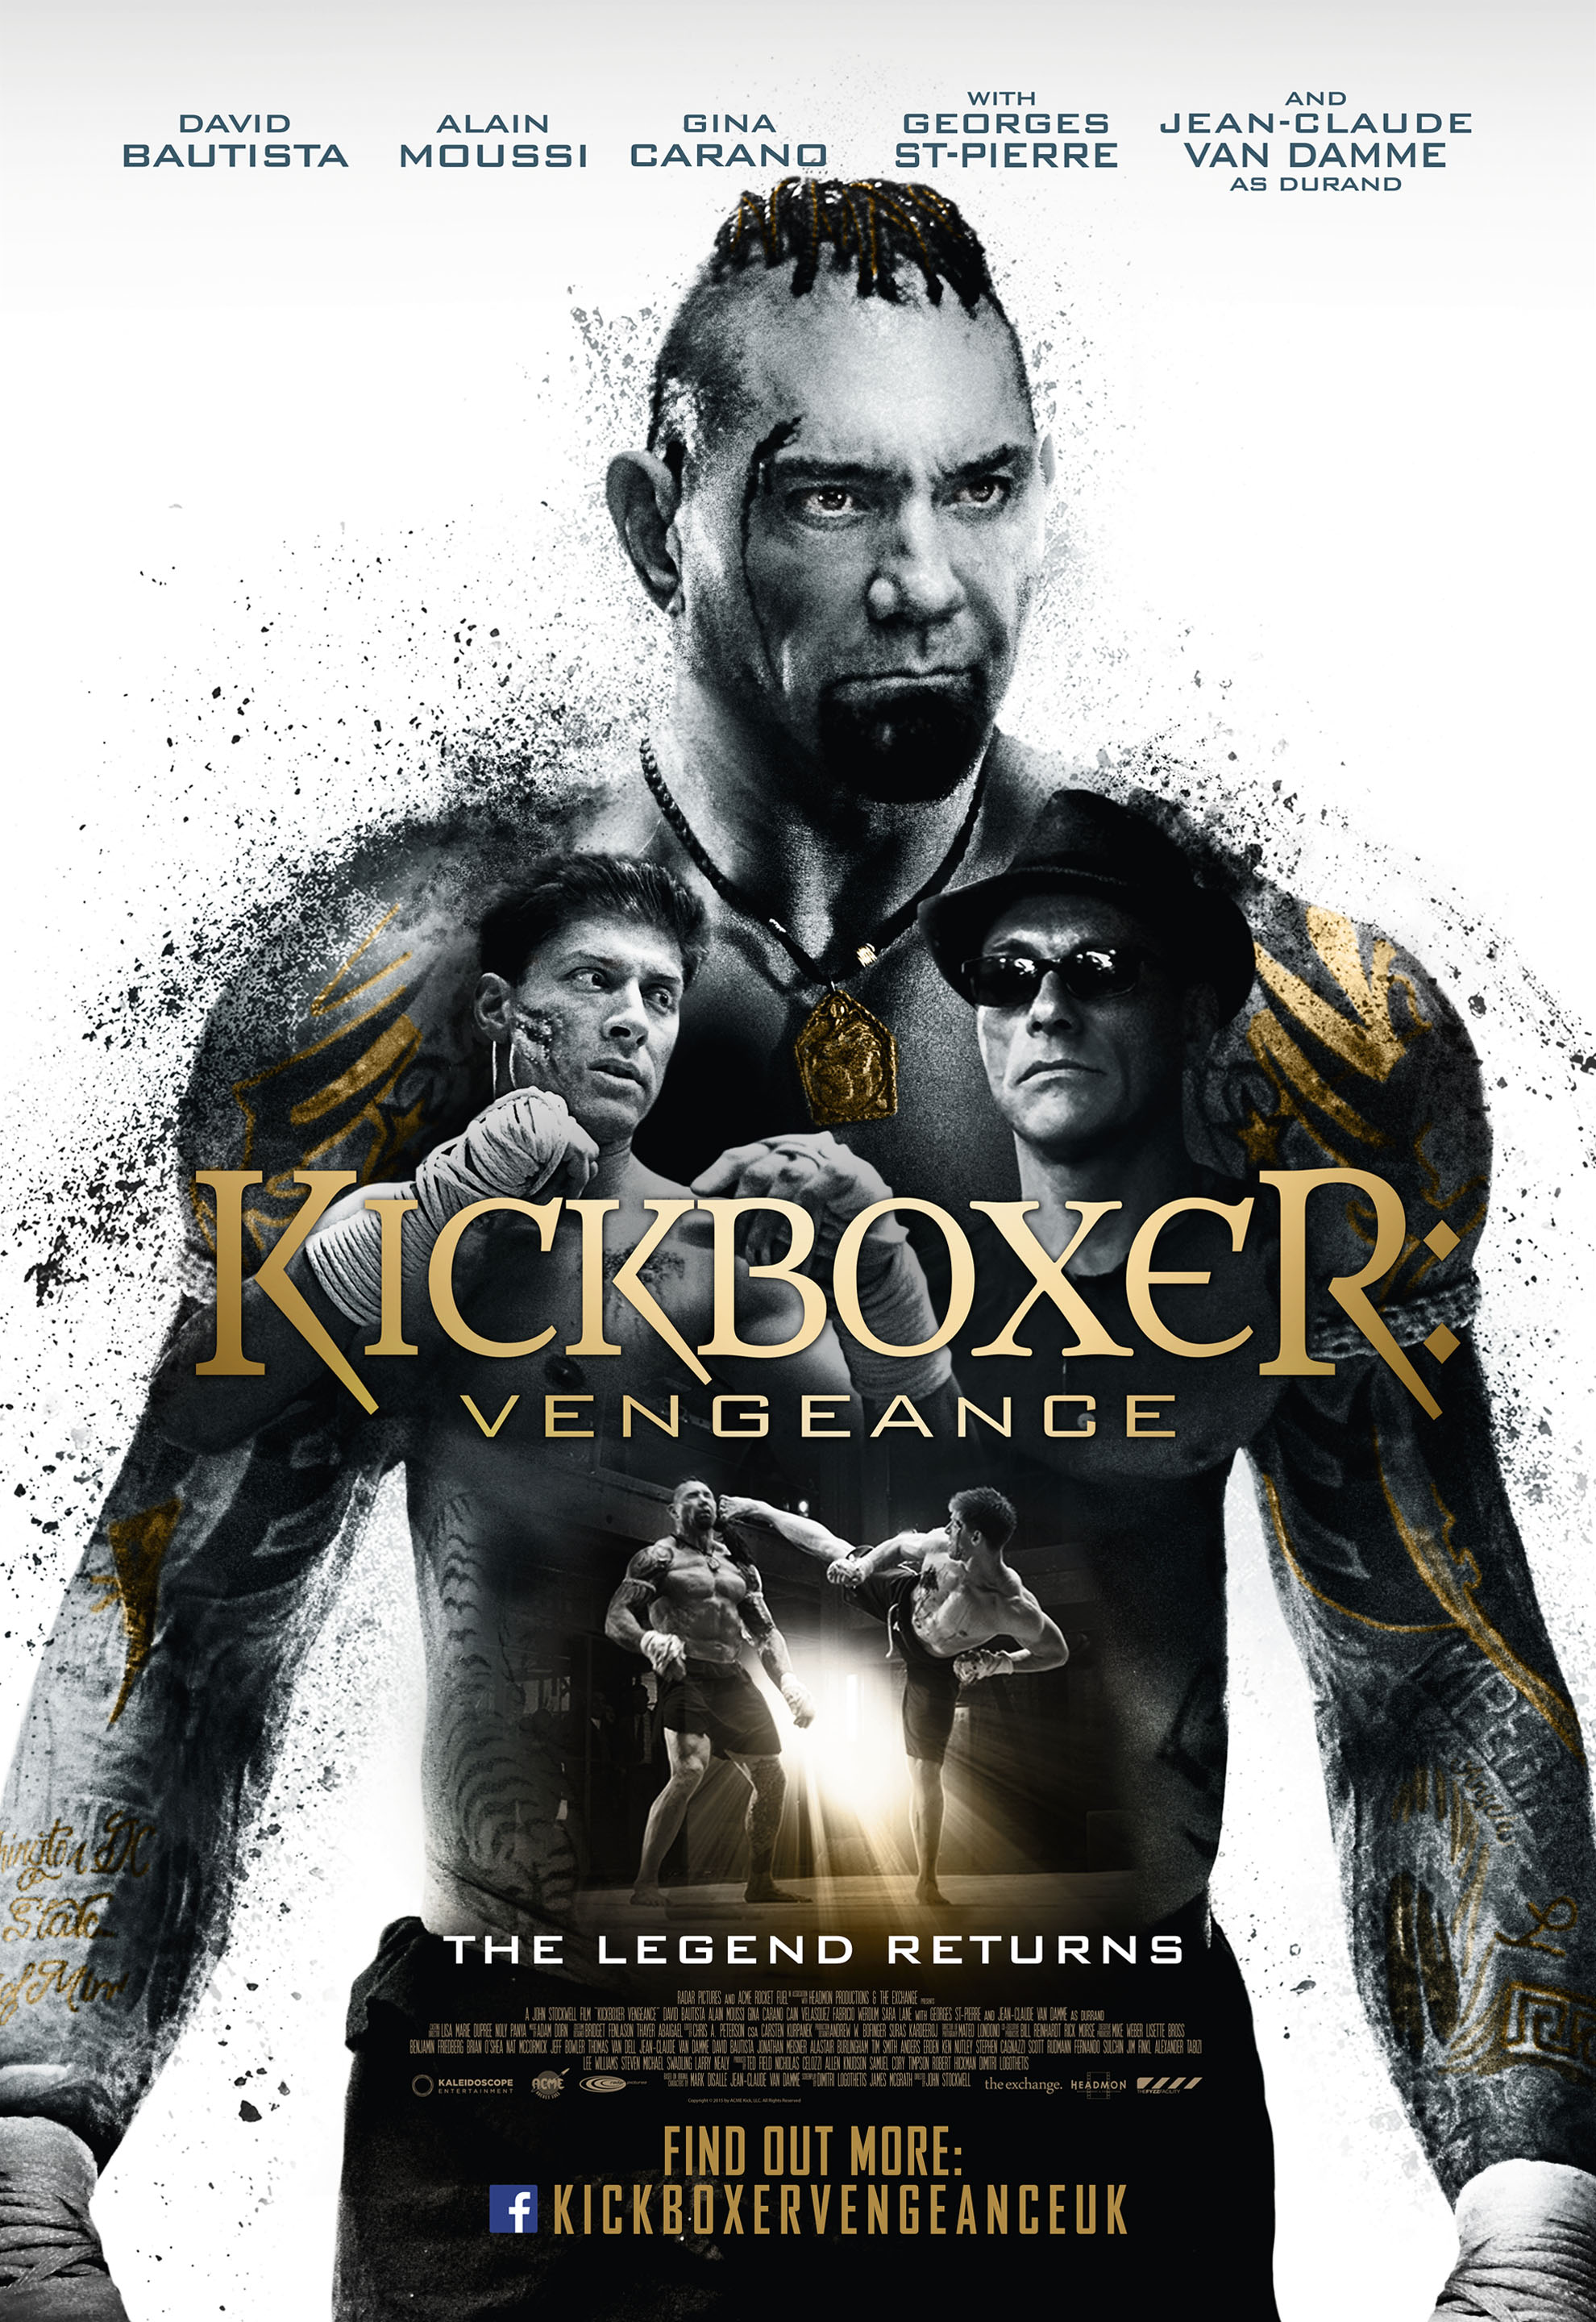 kickboxer_vengeance_one_sheet_final.jpg